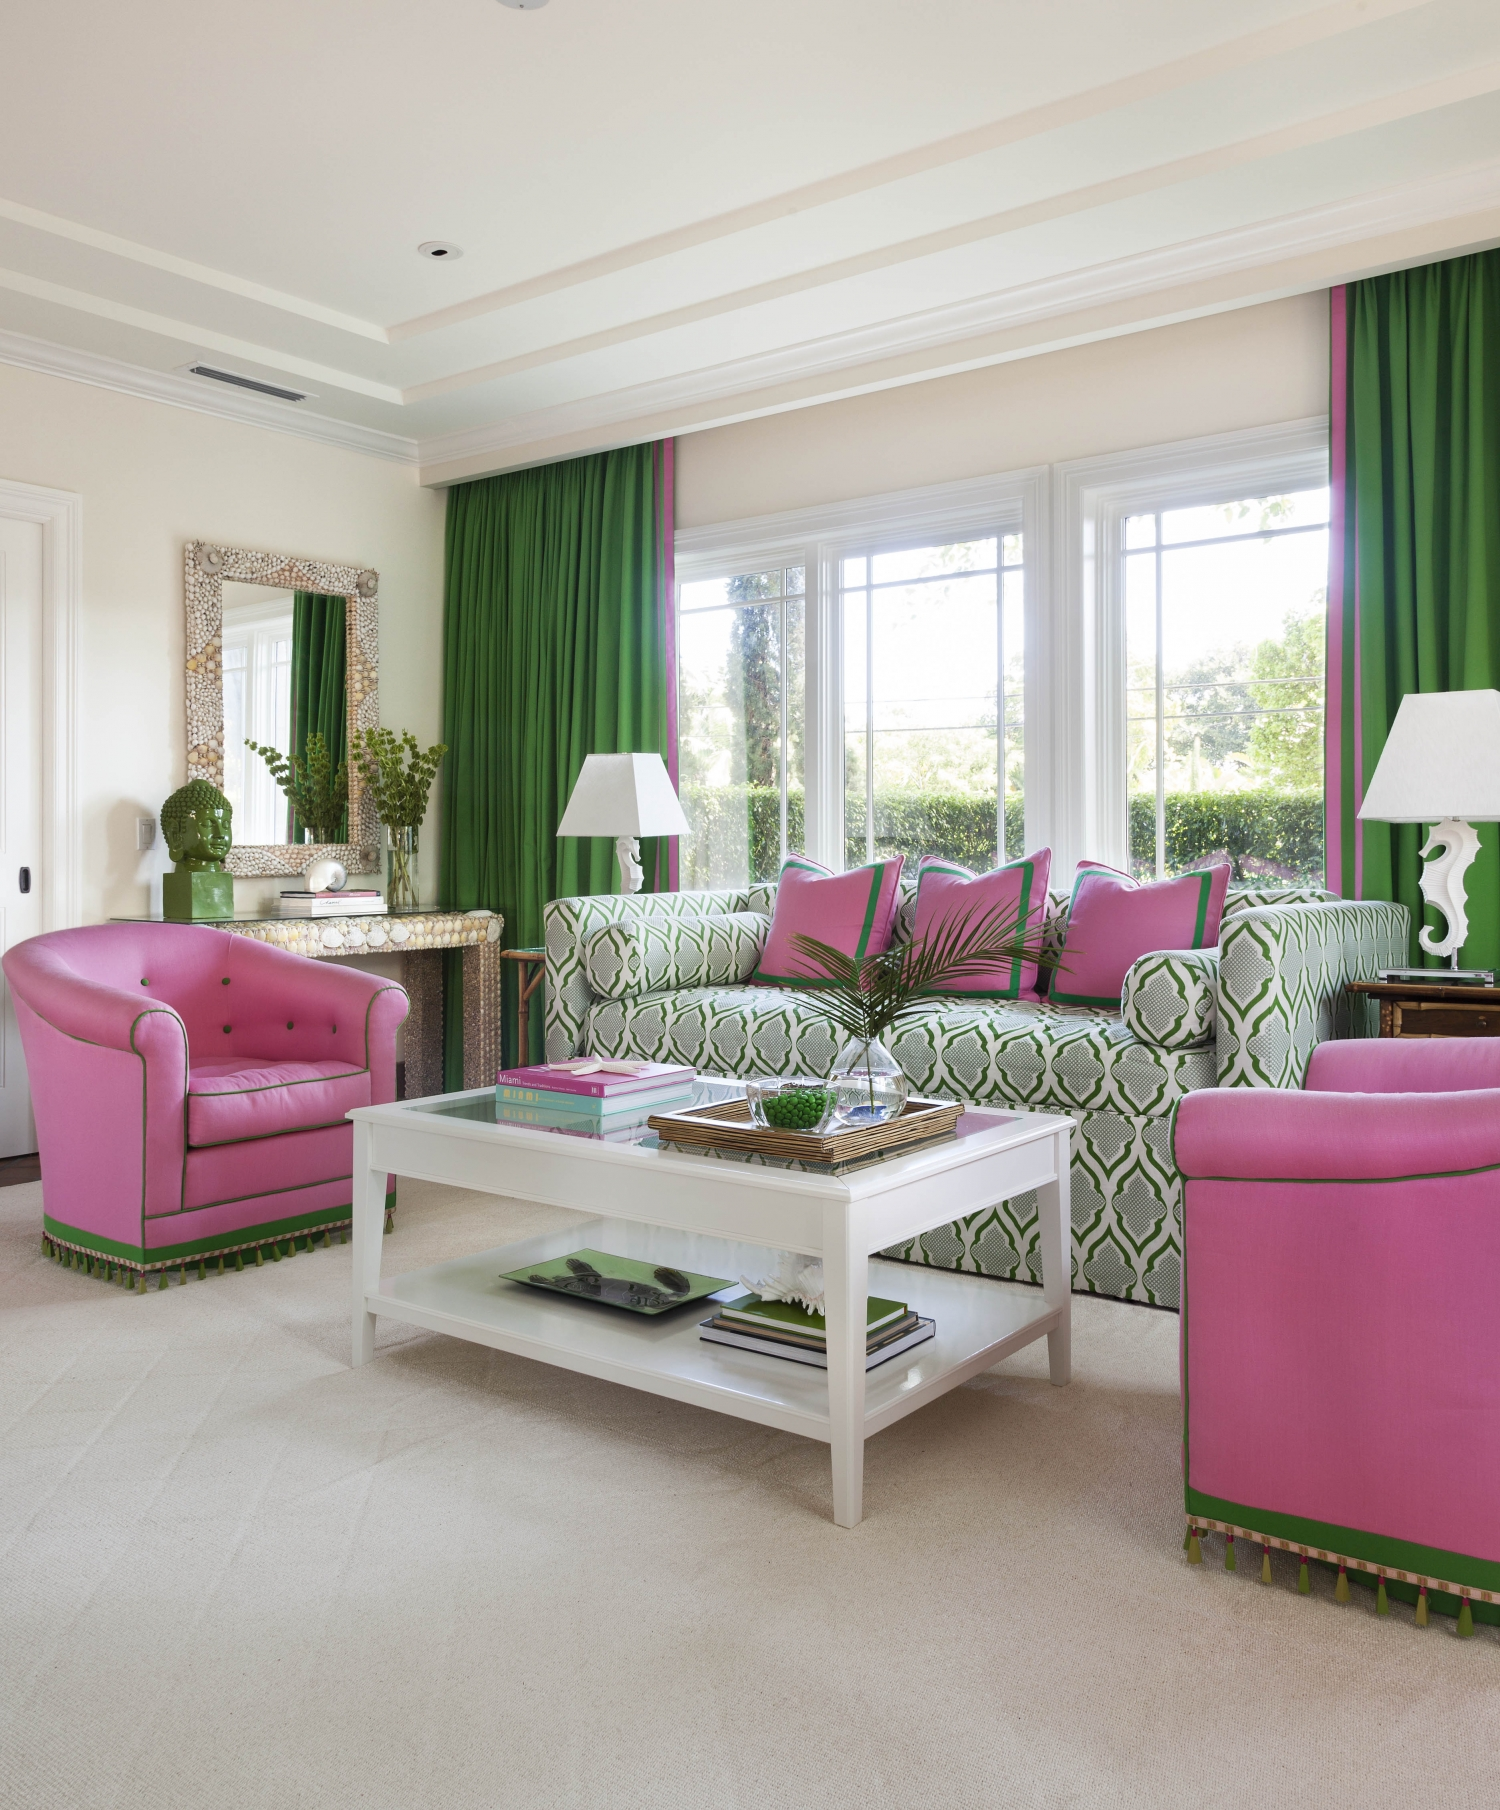 Interior Design Bedroom Colours Ceiling Design Of Bedroom Comfortable Bedroom Chairs Images Of Bedroom Decor: Bold Green And Pink Living And Bedroom